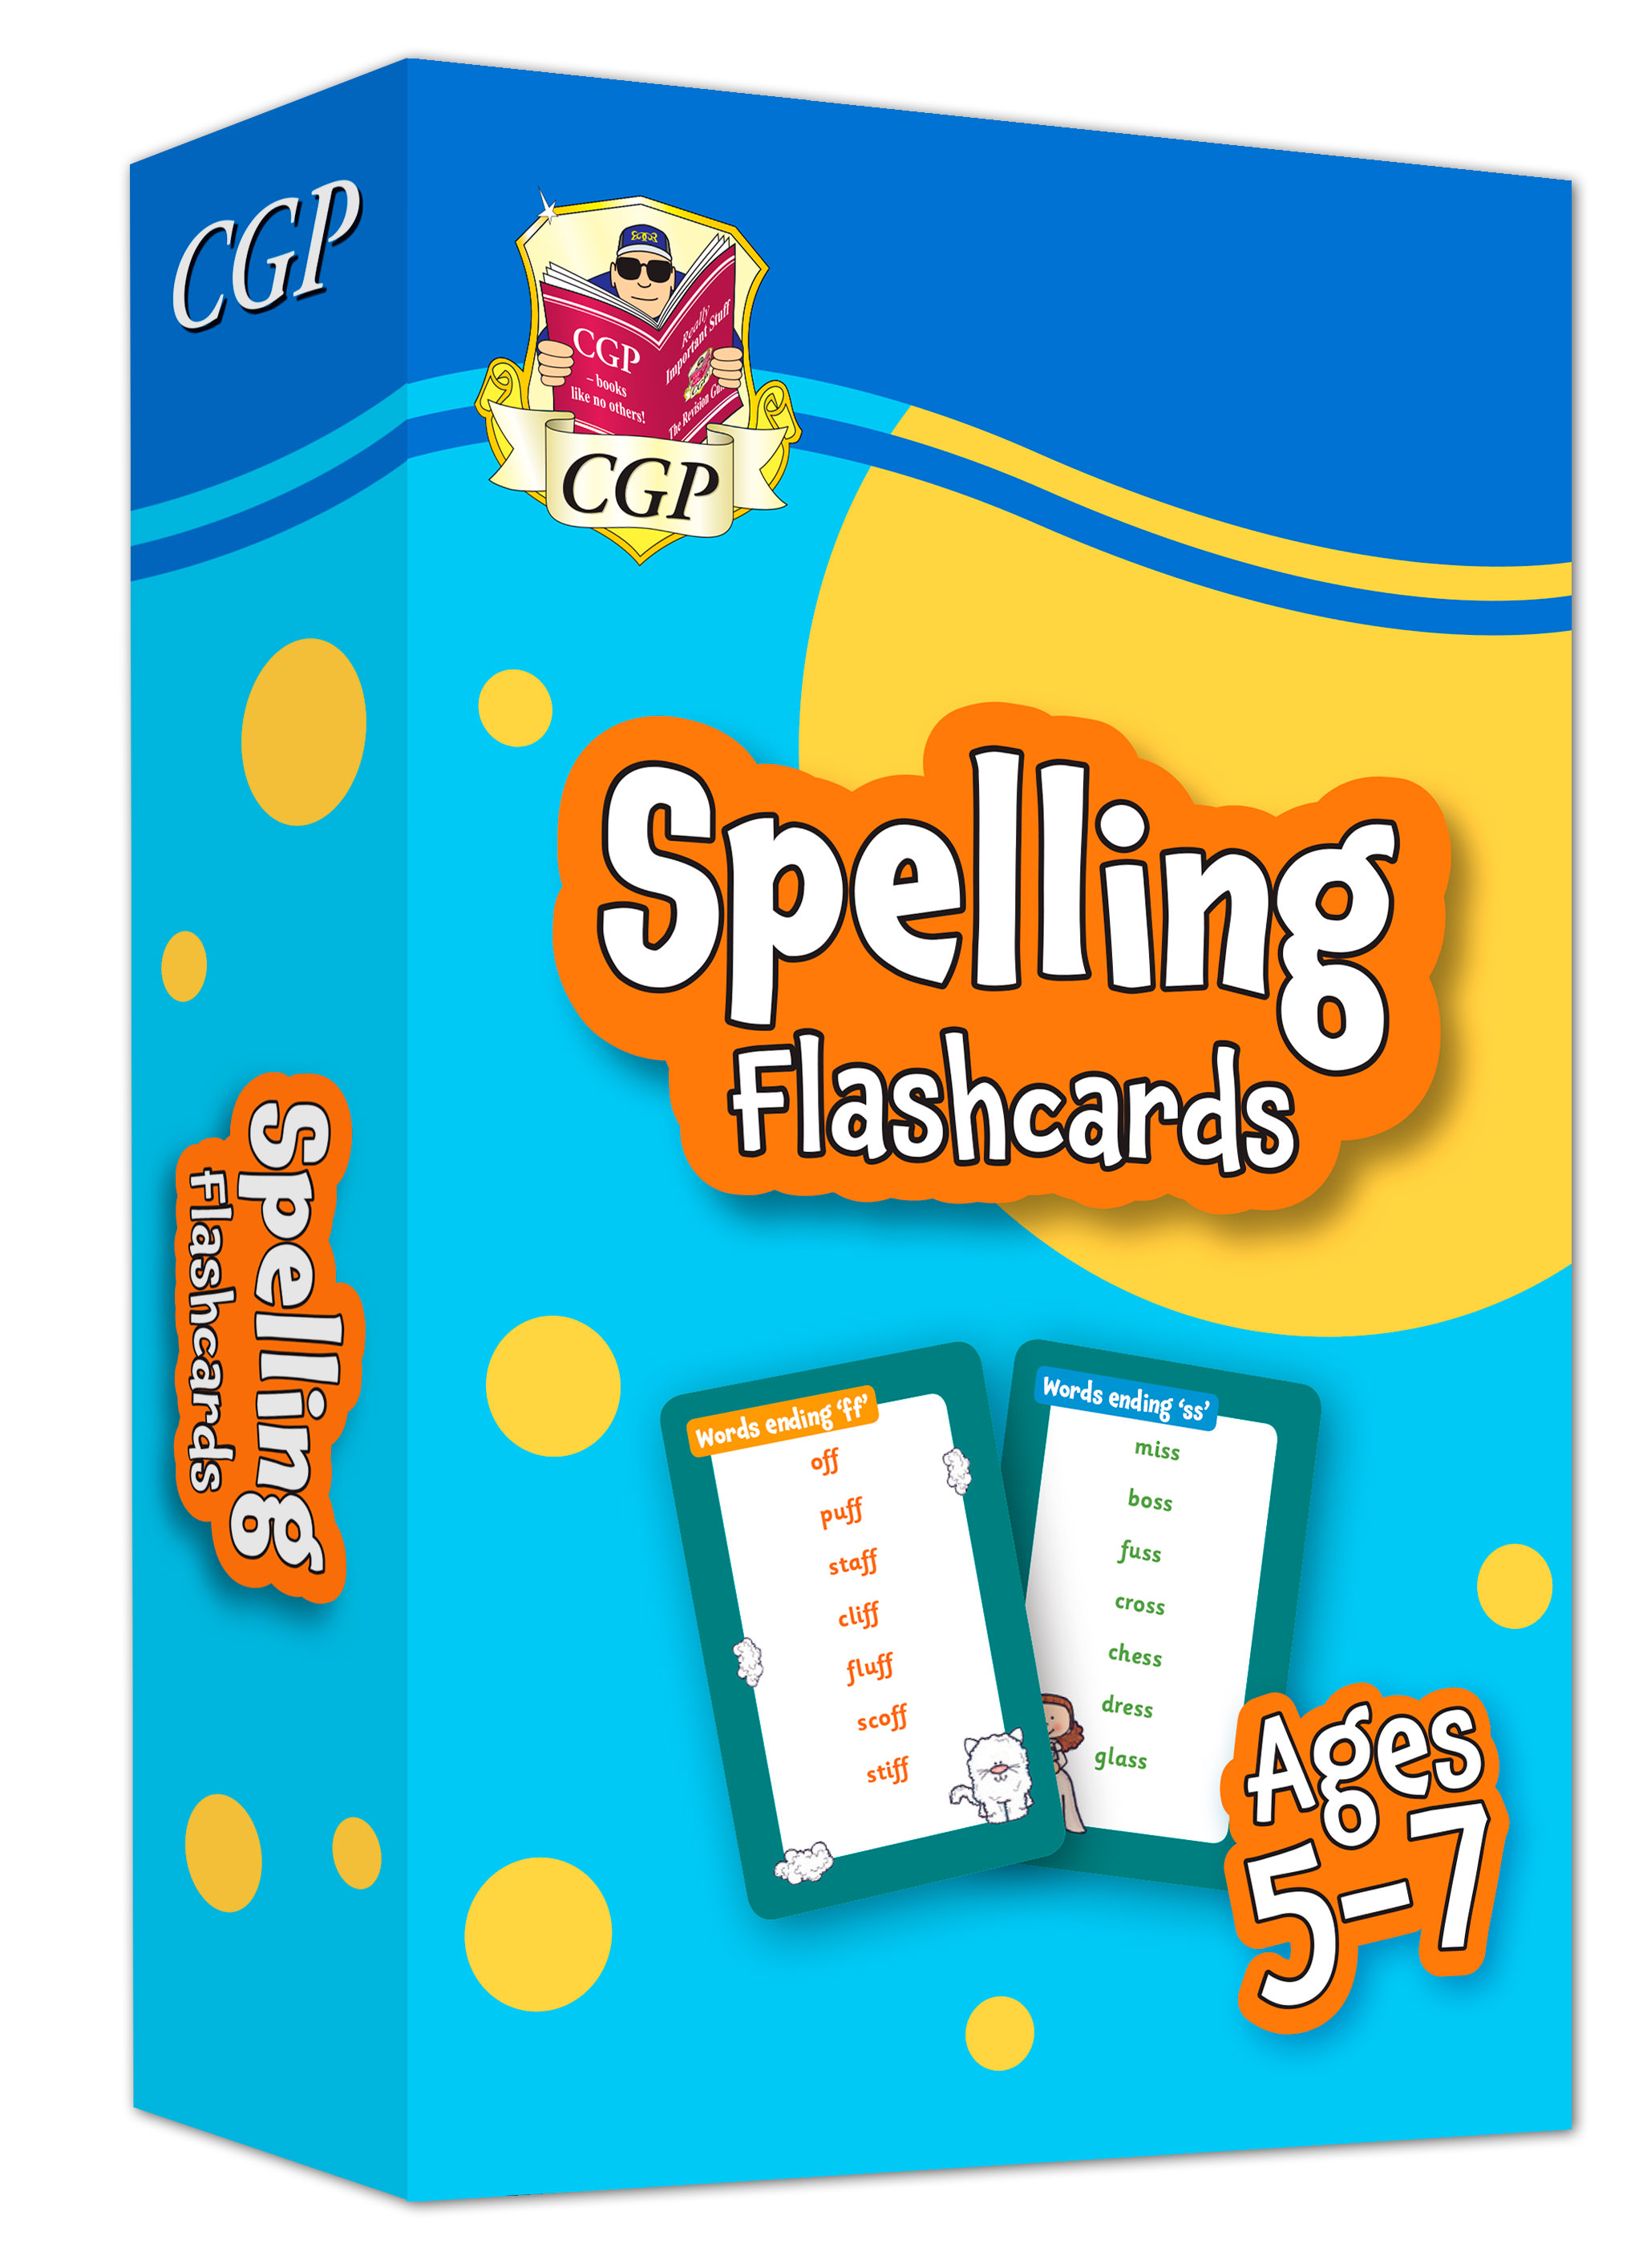 EPFSF11DK - New Spelling Home Learning Flashcards for Ages 5-7